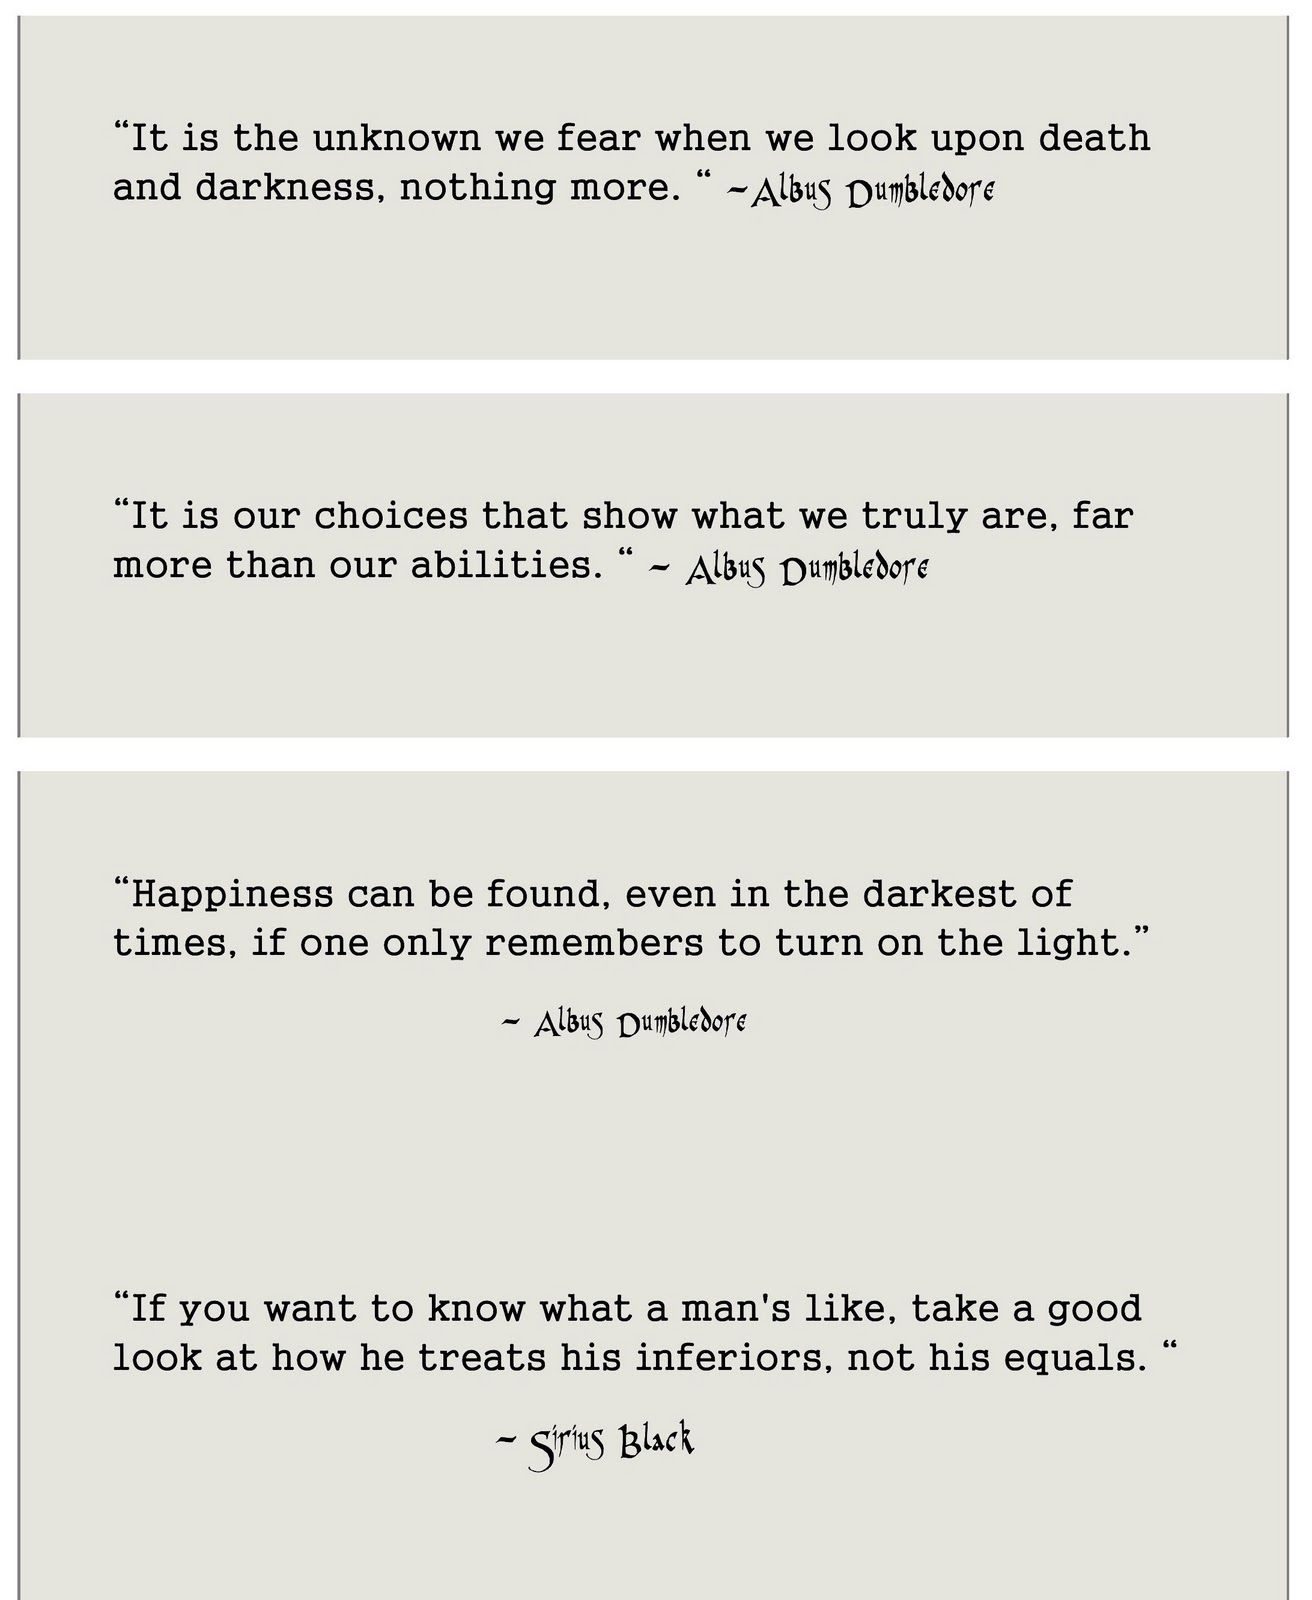 Harry Potter Book Quotes Quotes From Books  Google Search  Book Quotes  Pinterest